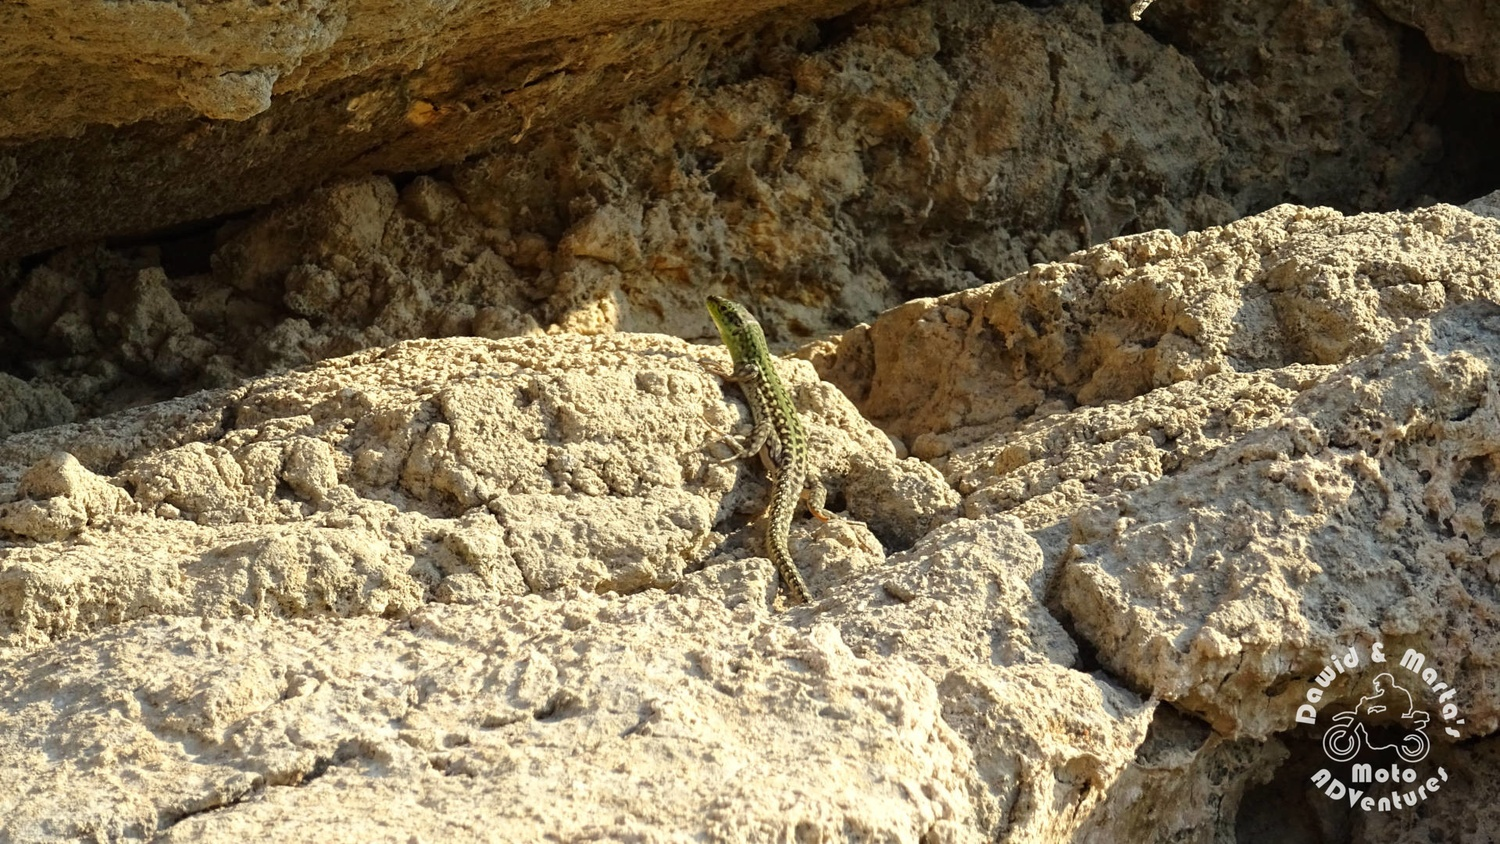 Green lizard at Peruca Lake shore